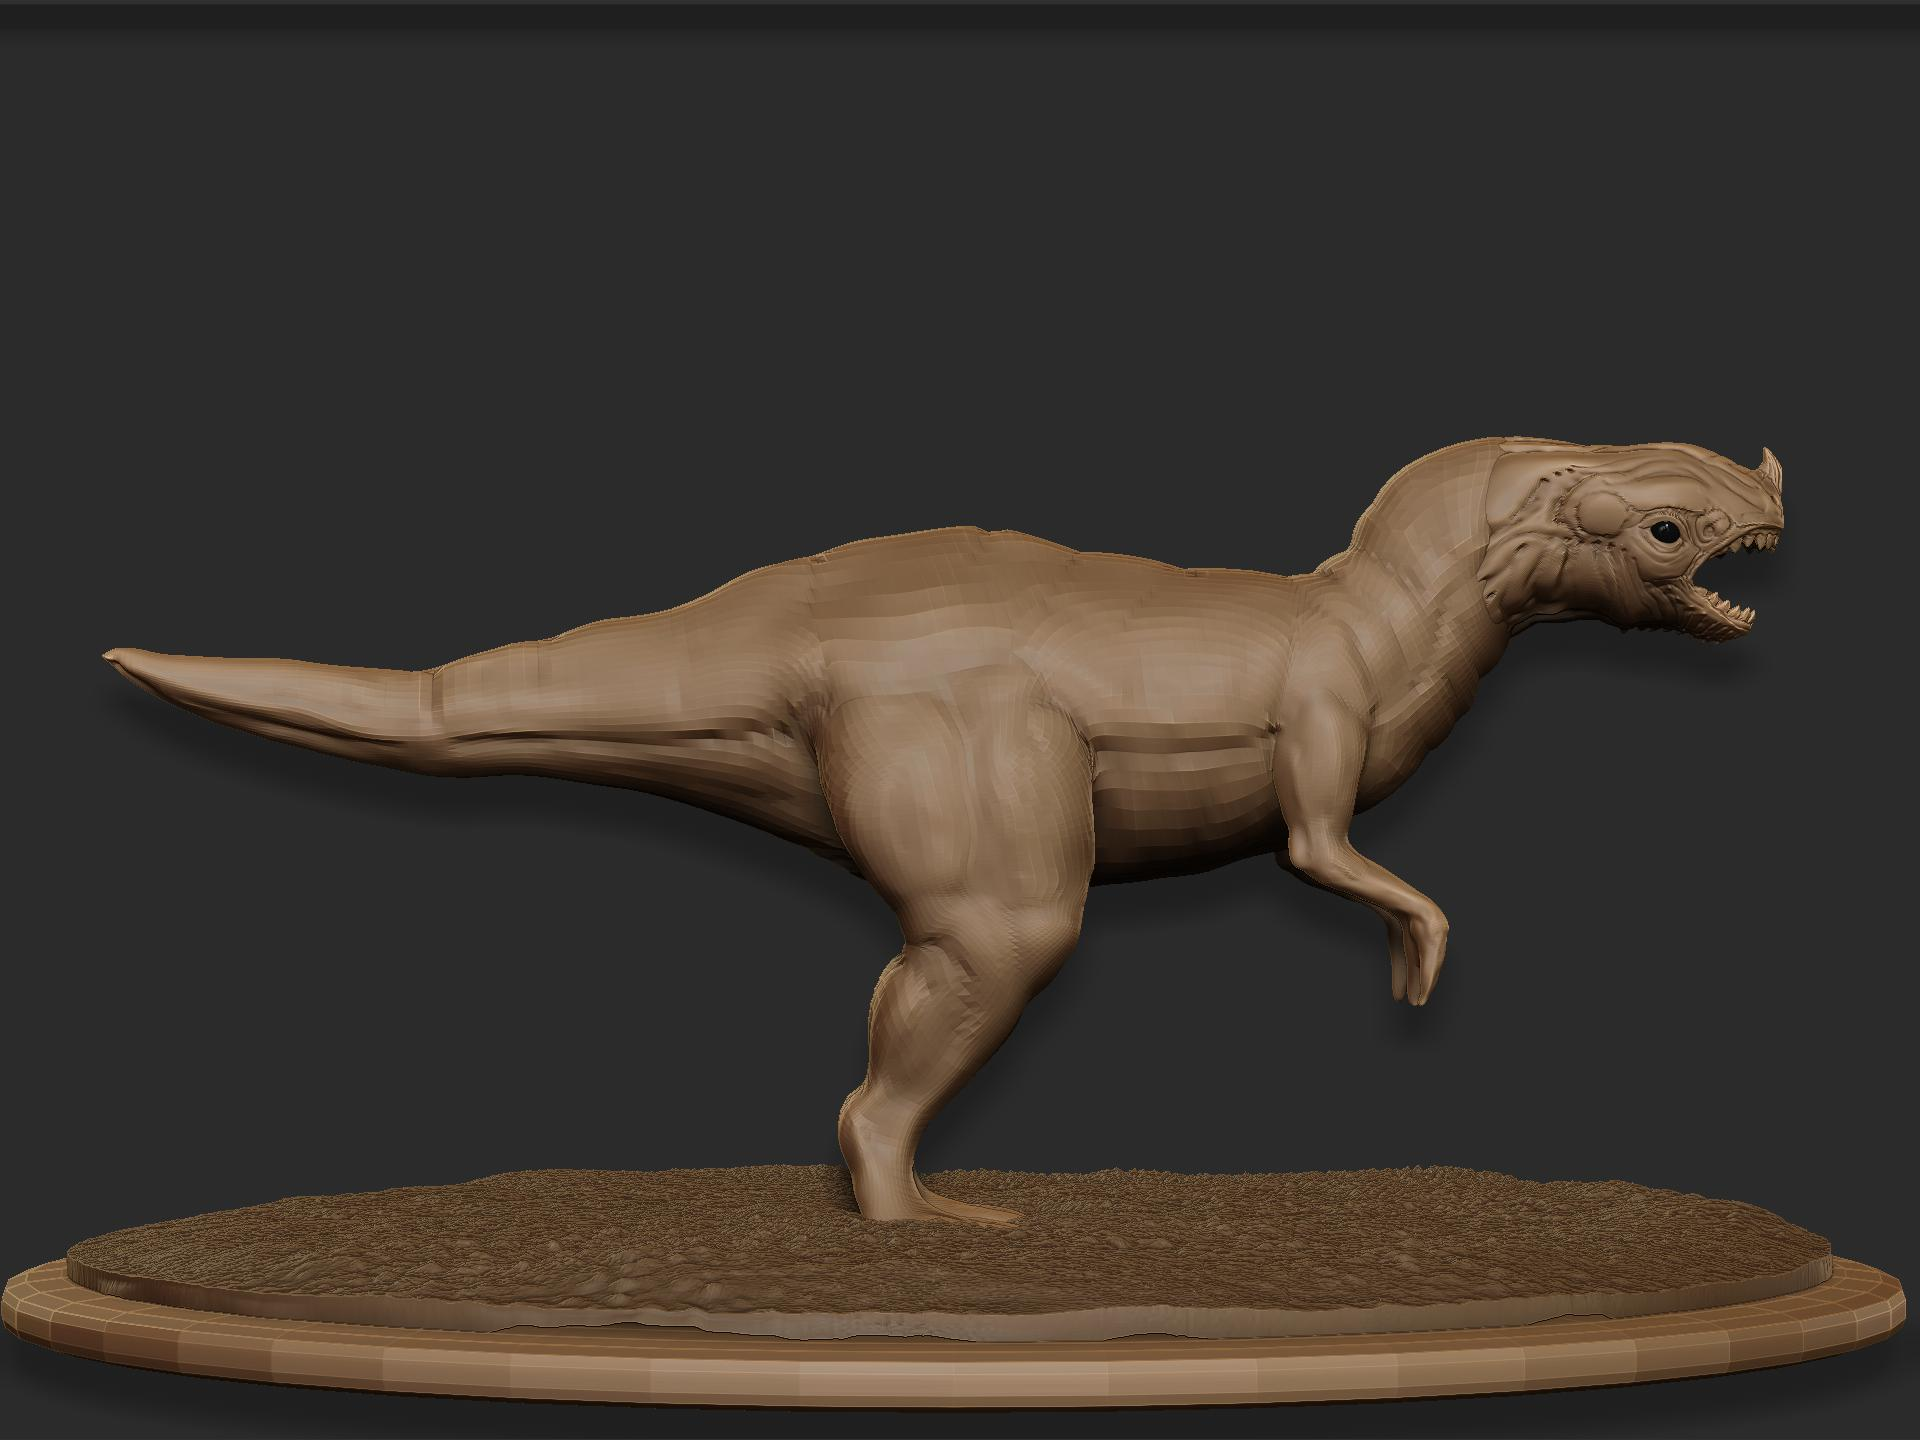 dino sculpt 1 side.jpg